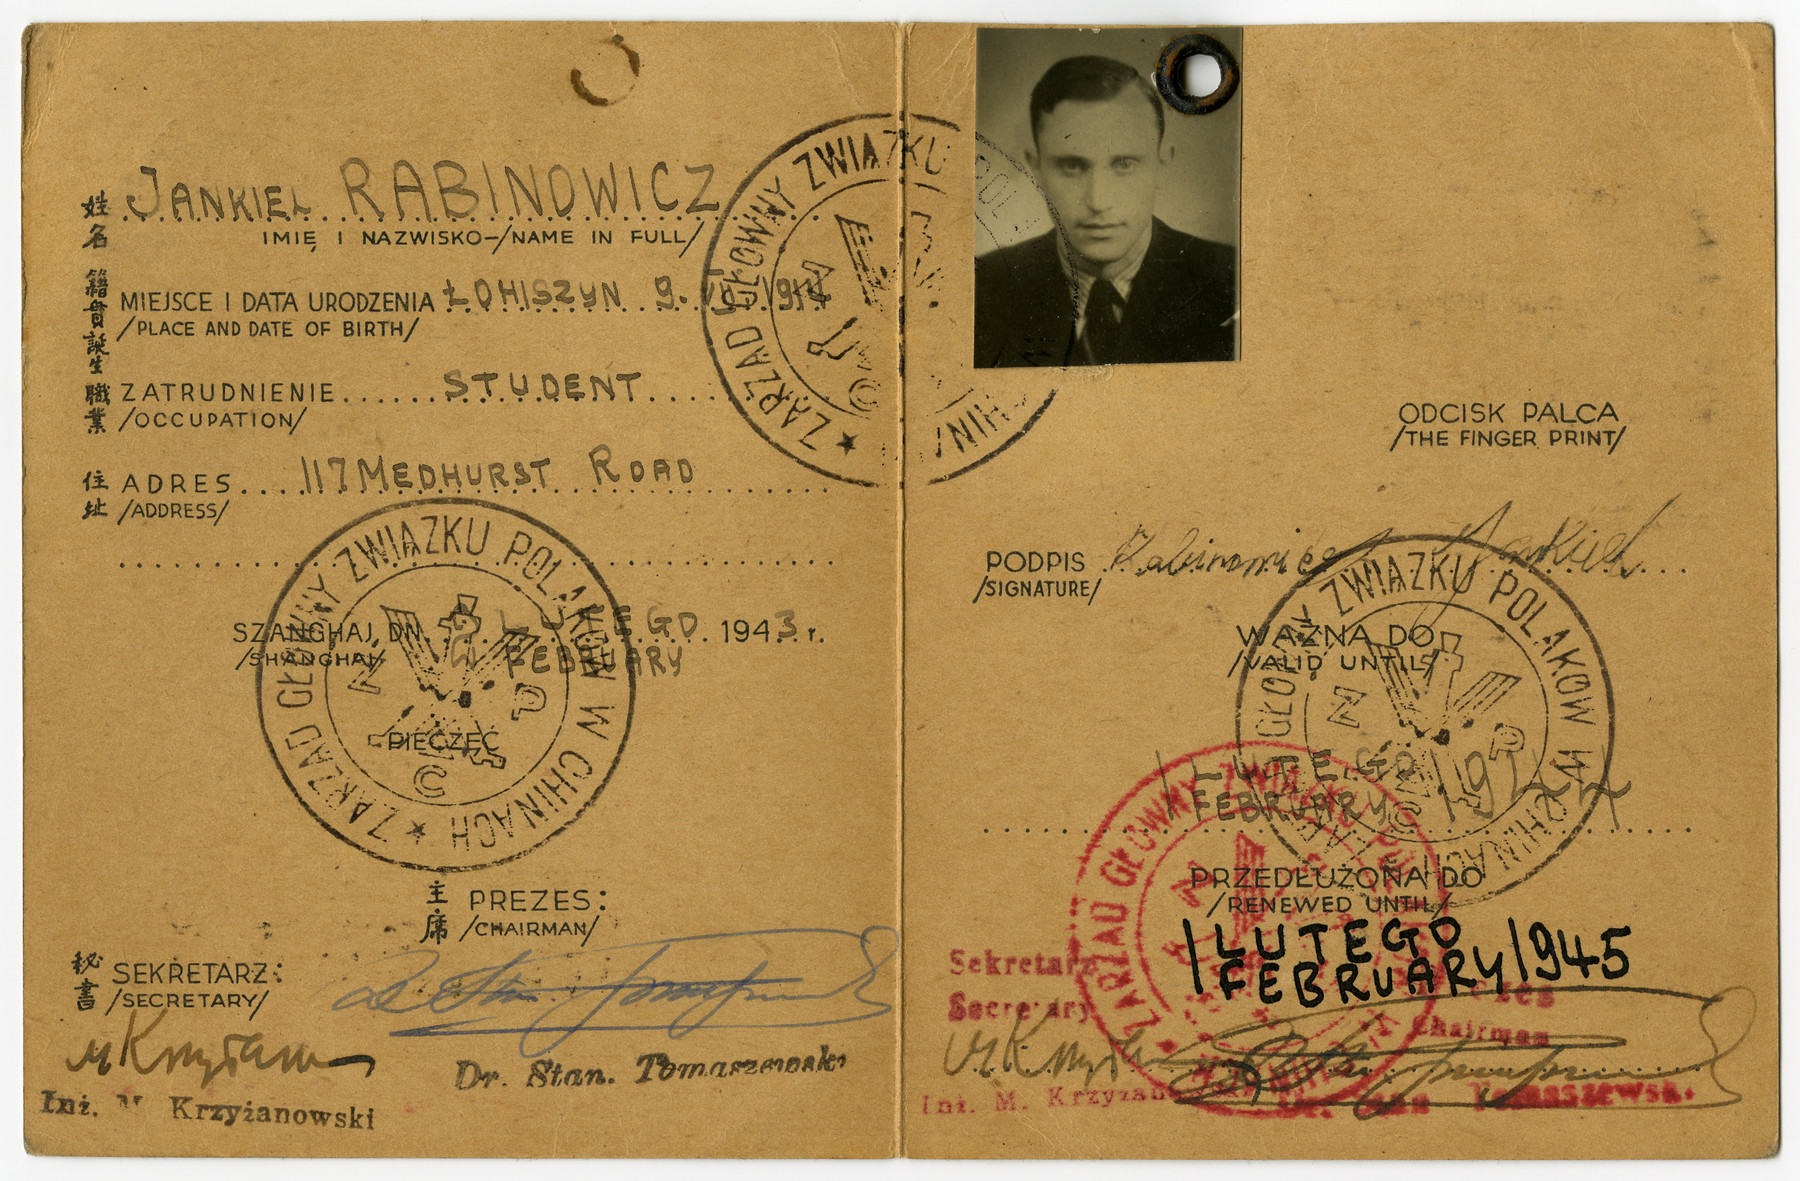 Identification card of the Polish Residents Association in China issued to Jankiel Rabinowicz.